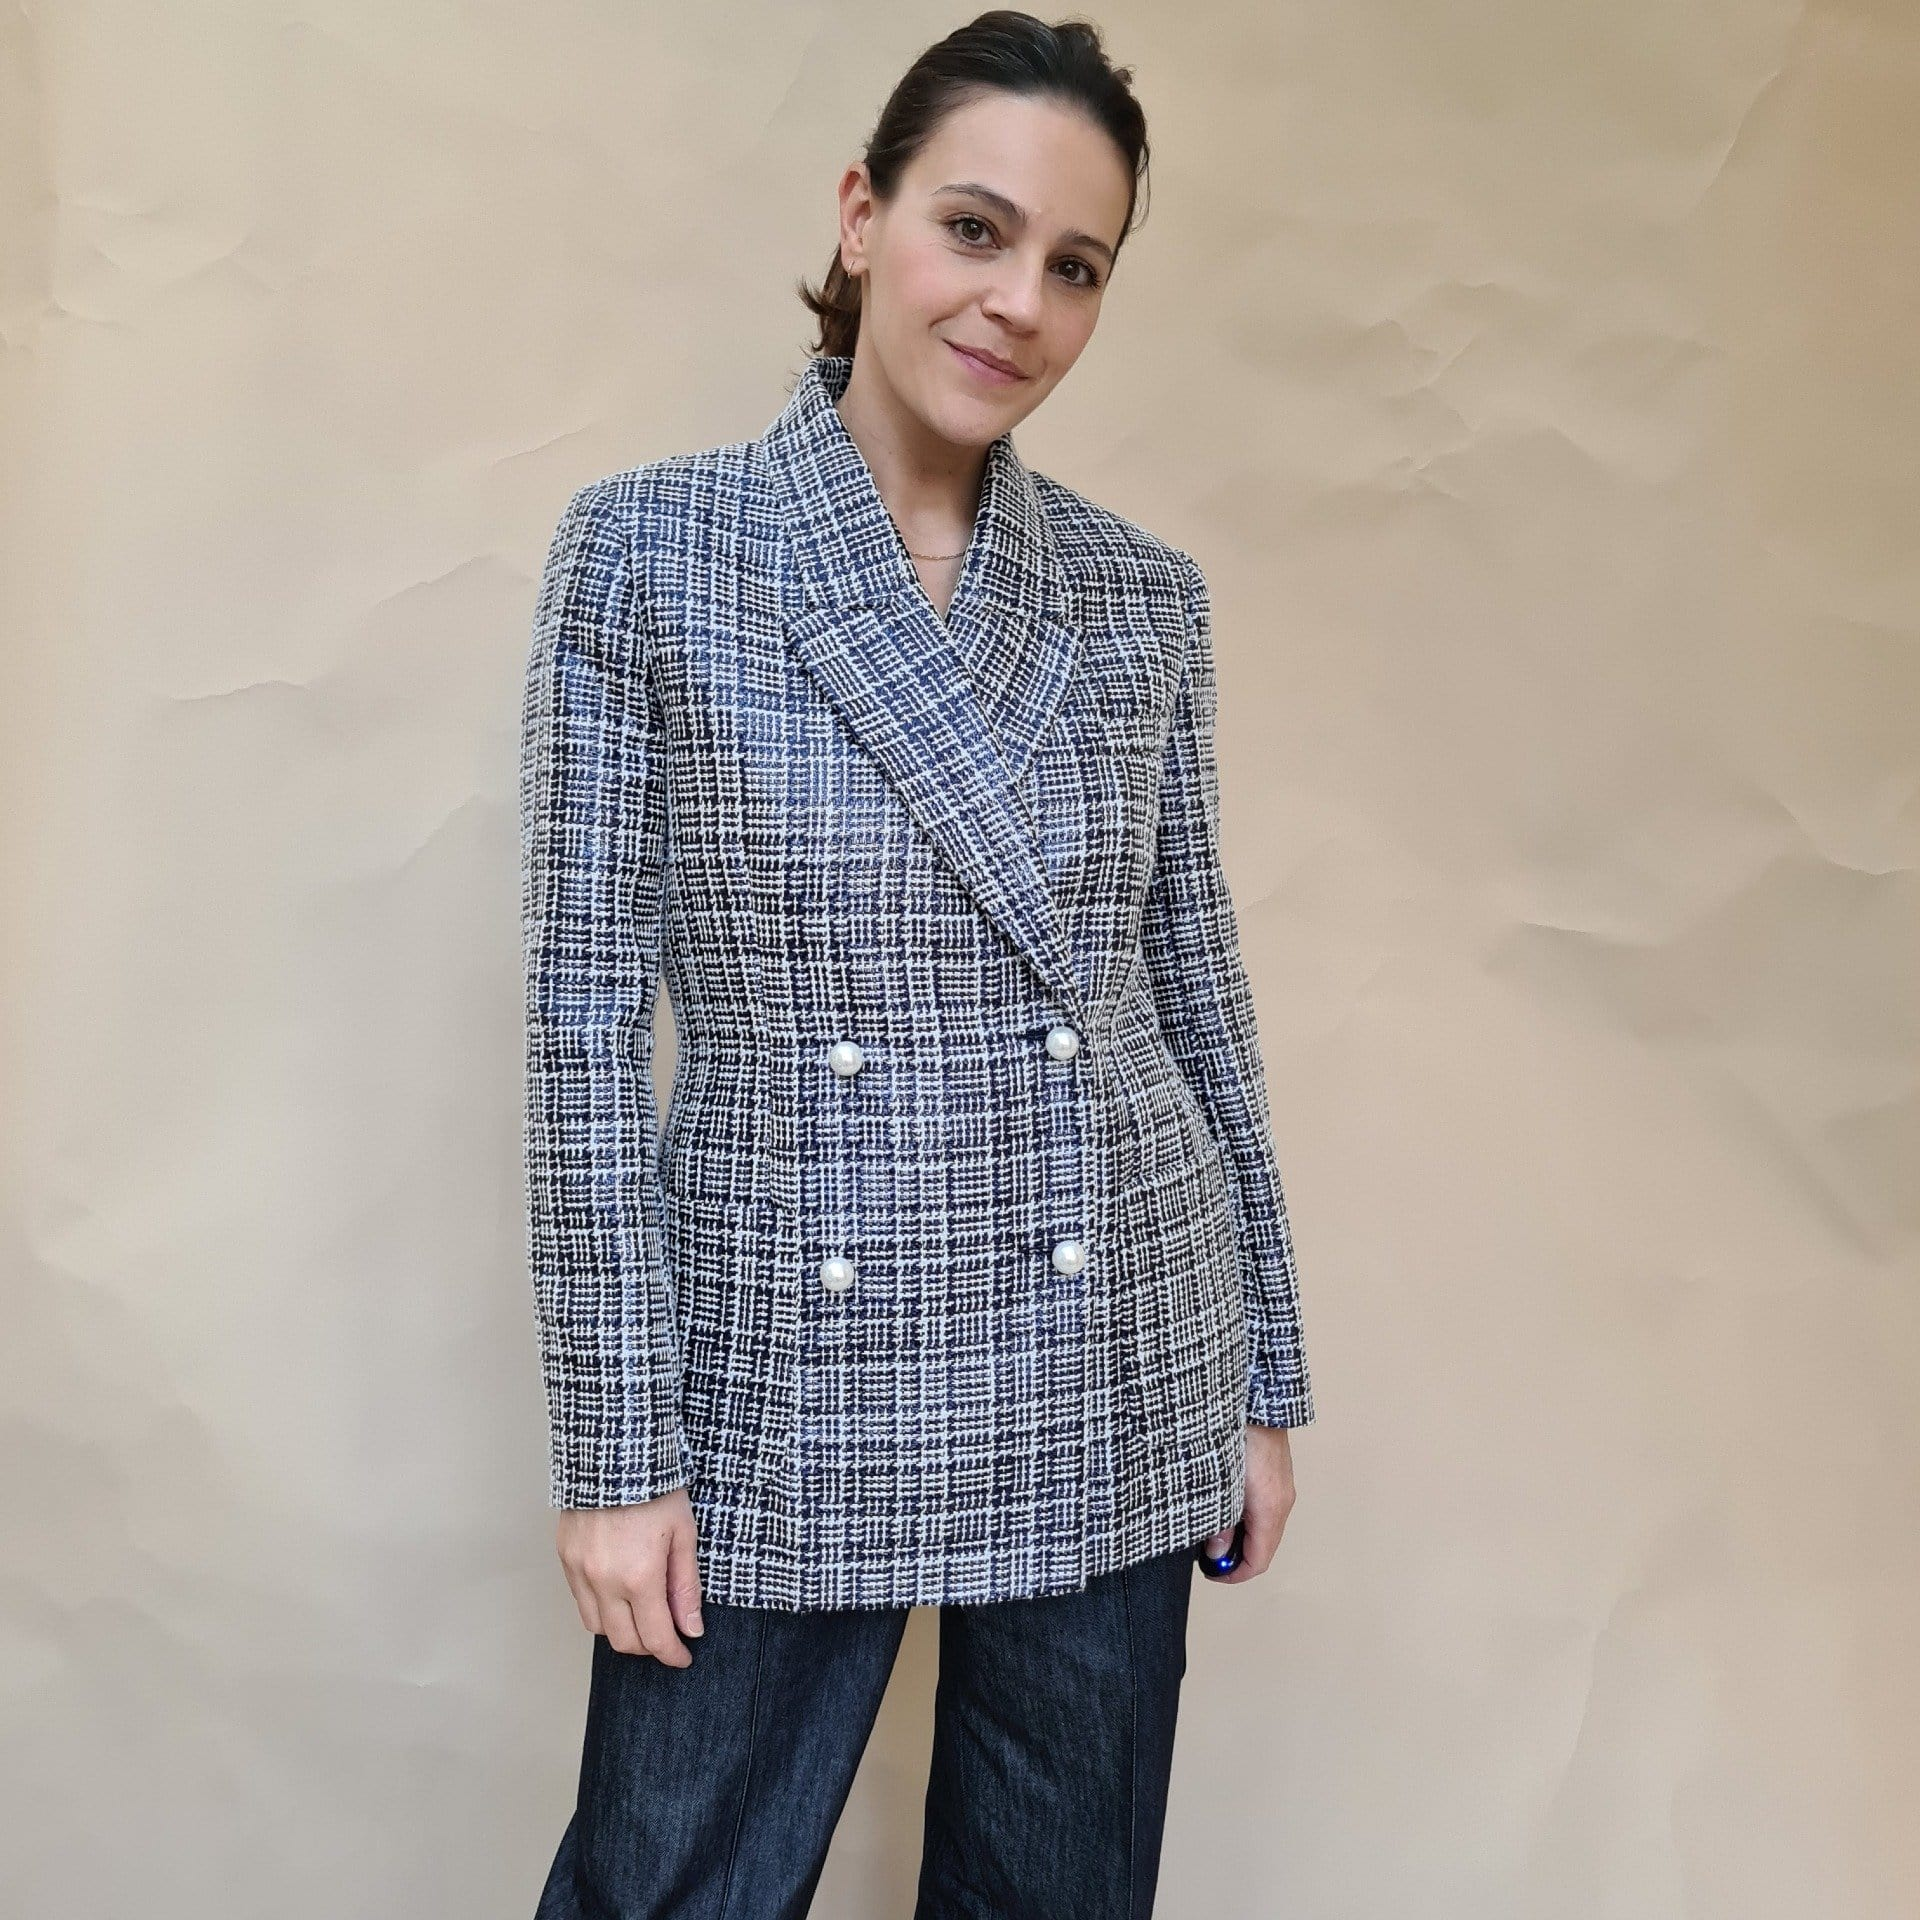 Timeless Sartorial Style for Women,